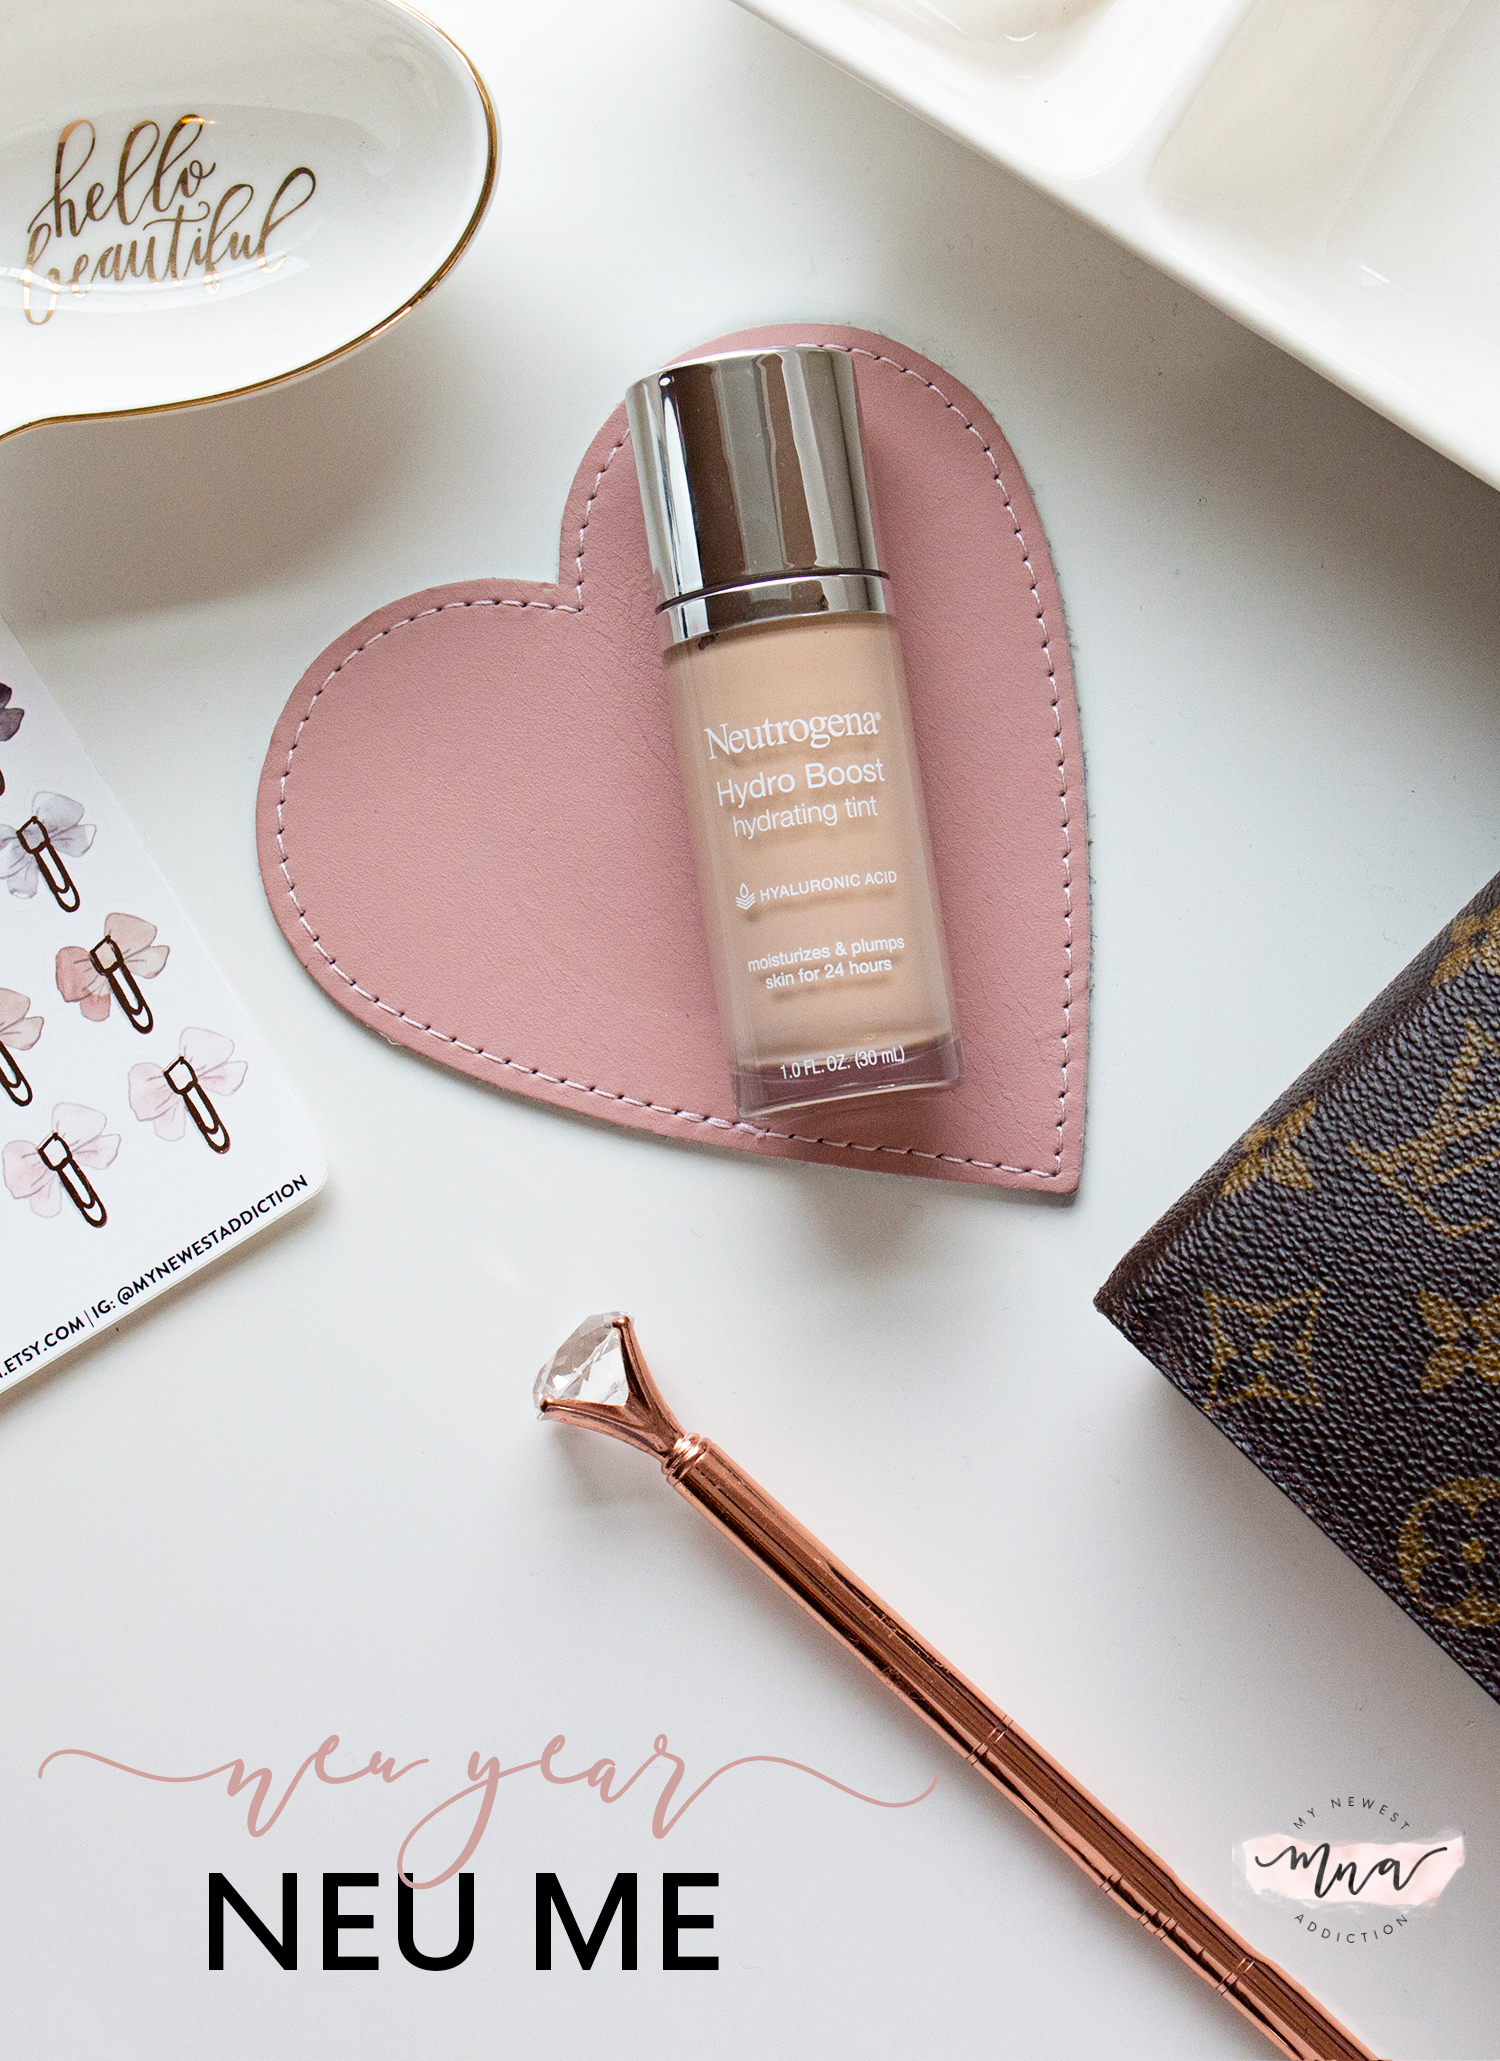 Neutrogena Hydro Boost Foundation